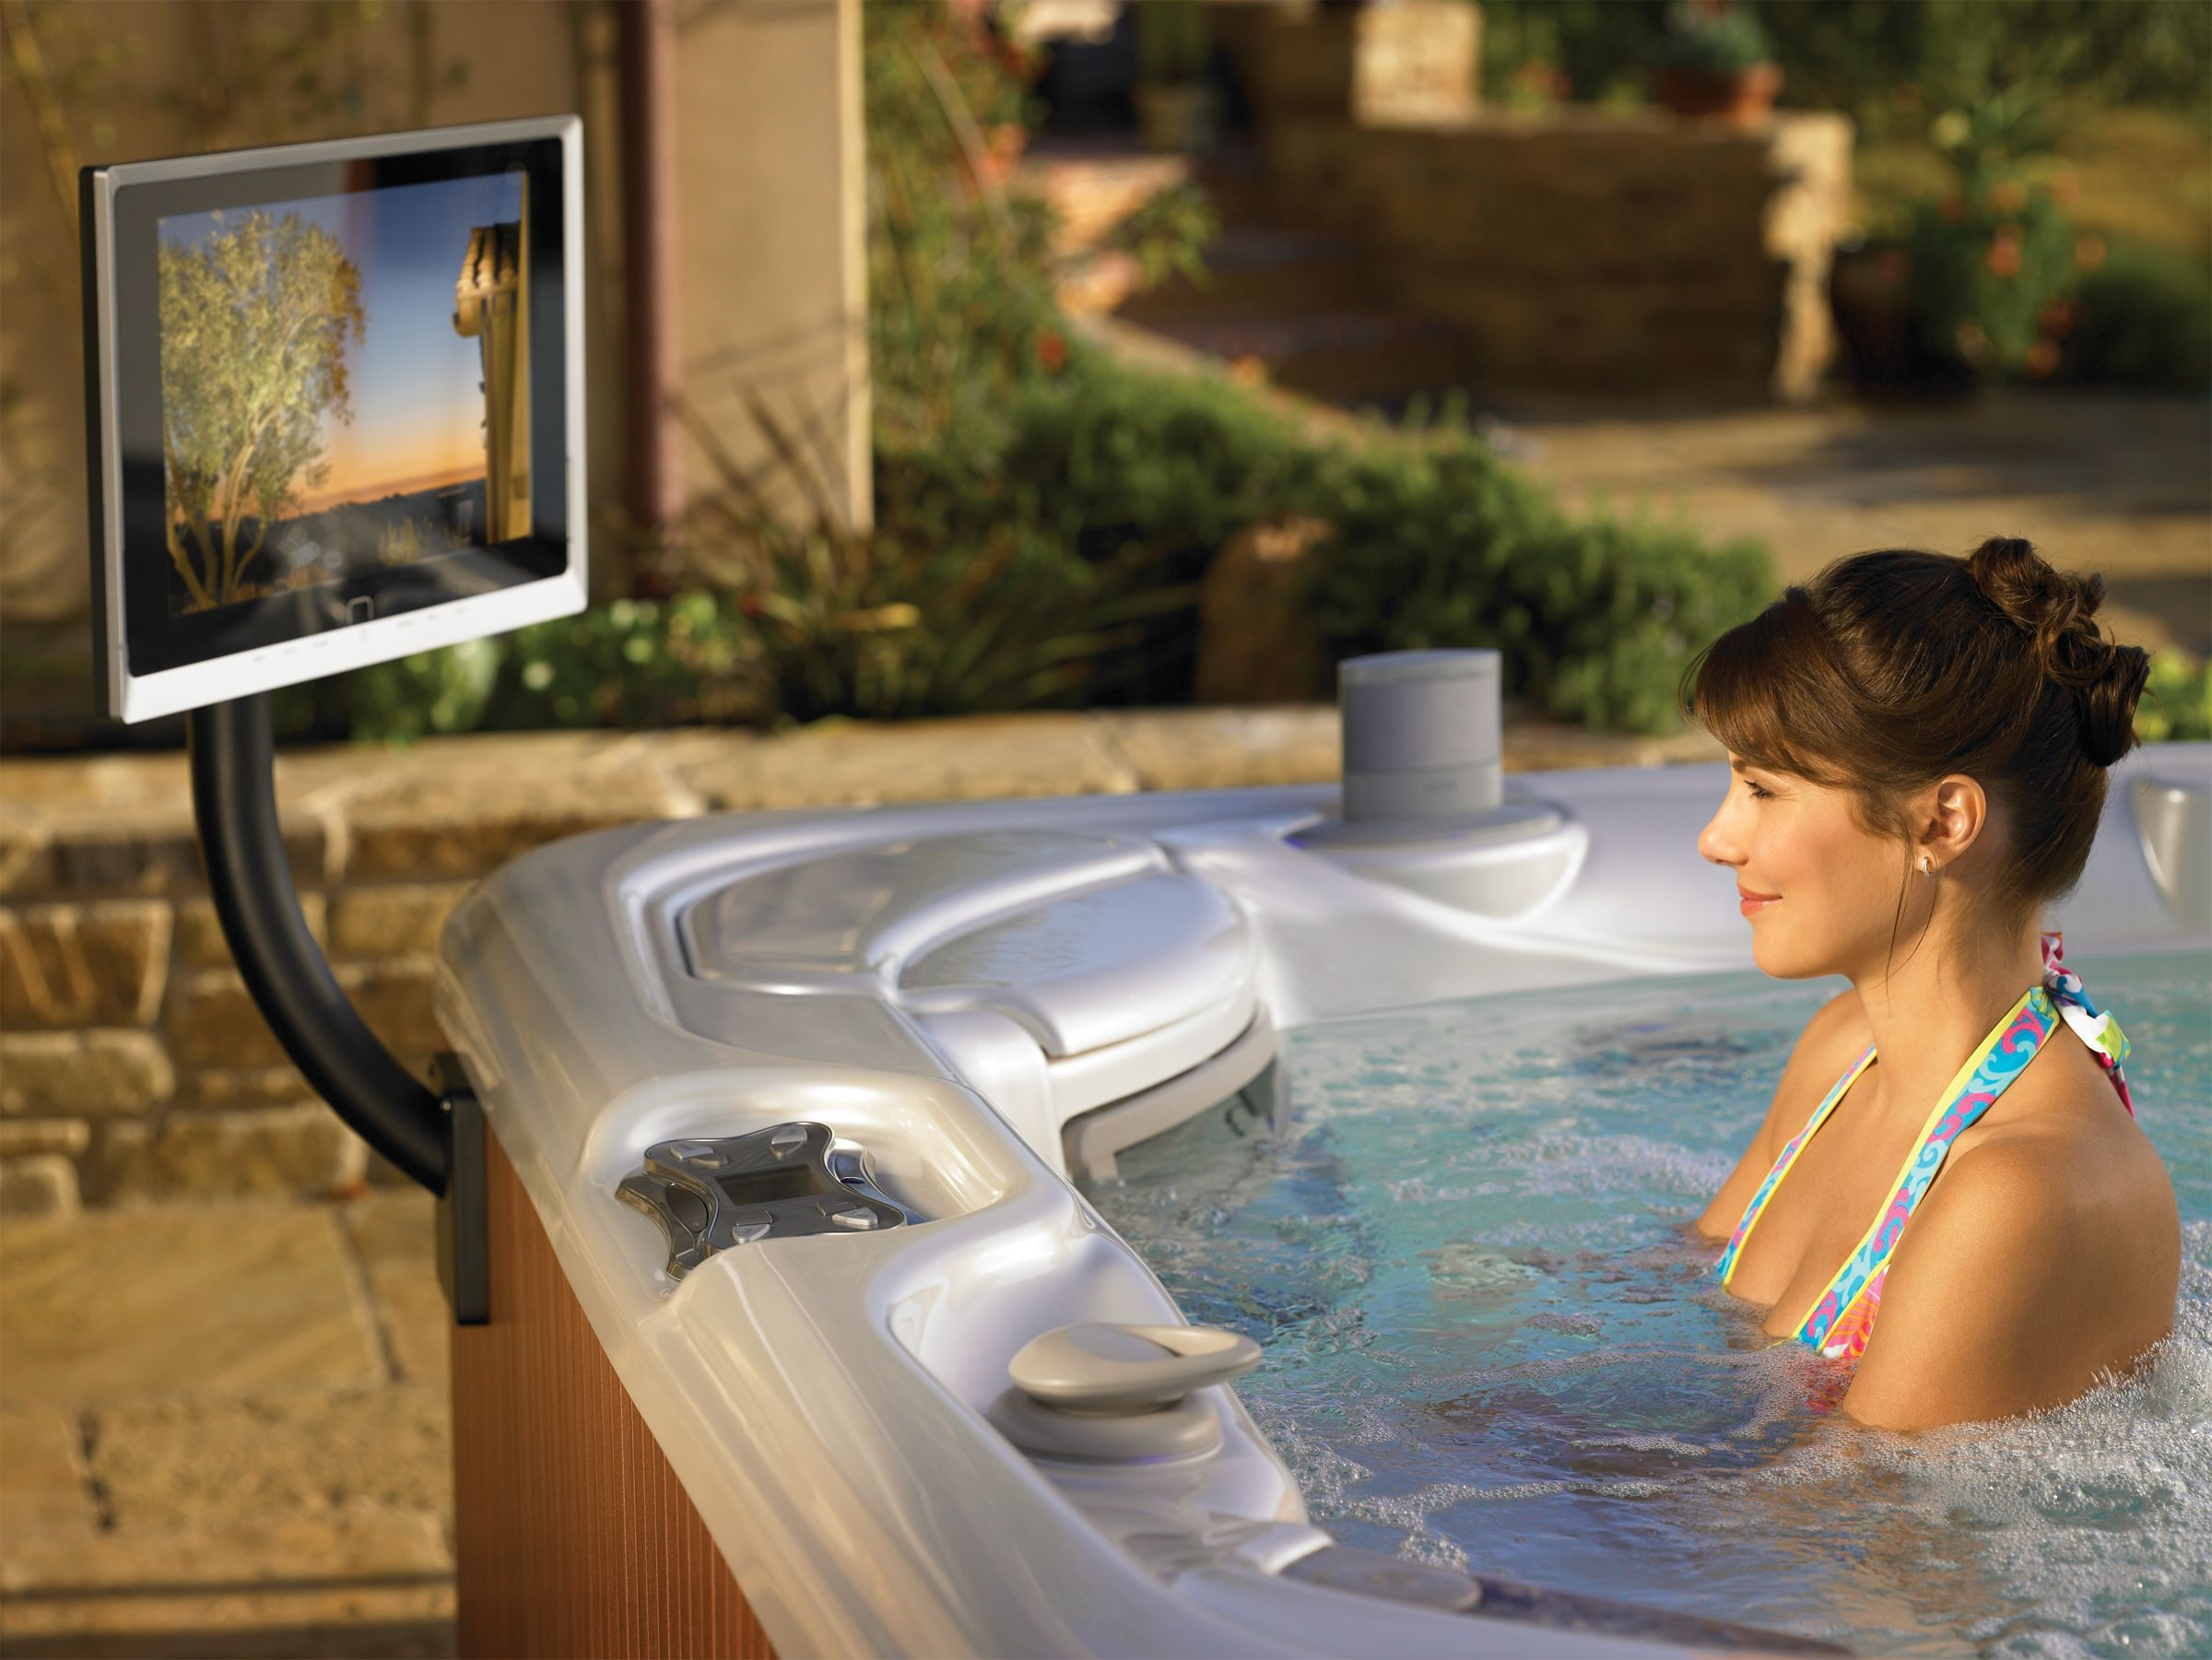 Hot Tub Entertainment Systems Tv Music For Hot Tubs Hot Tub